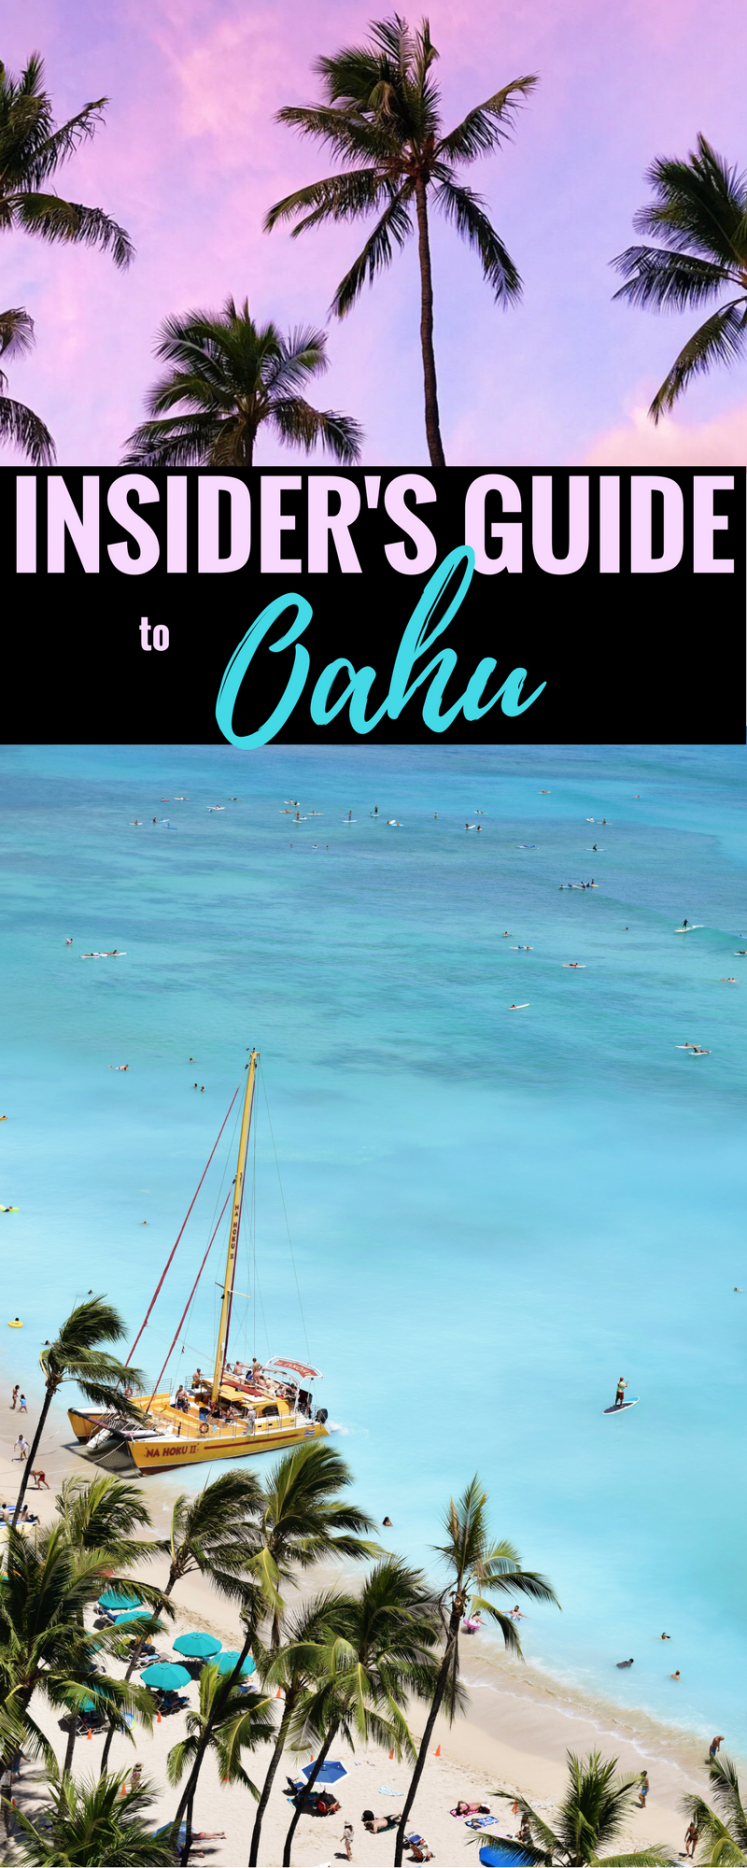 An Insider's Guide To Oahu